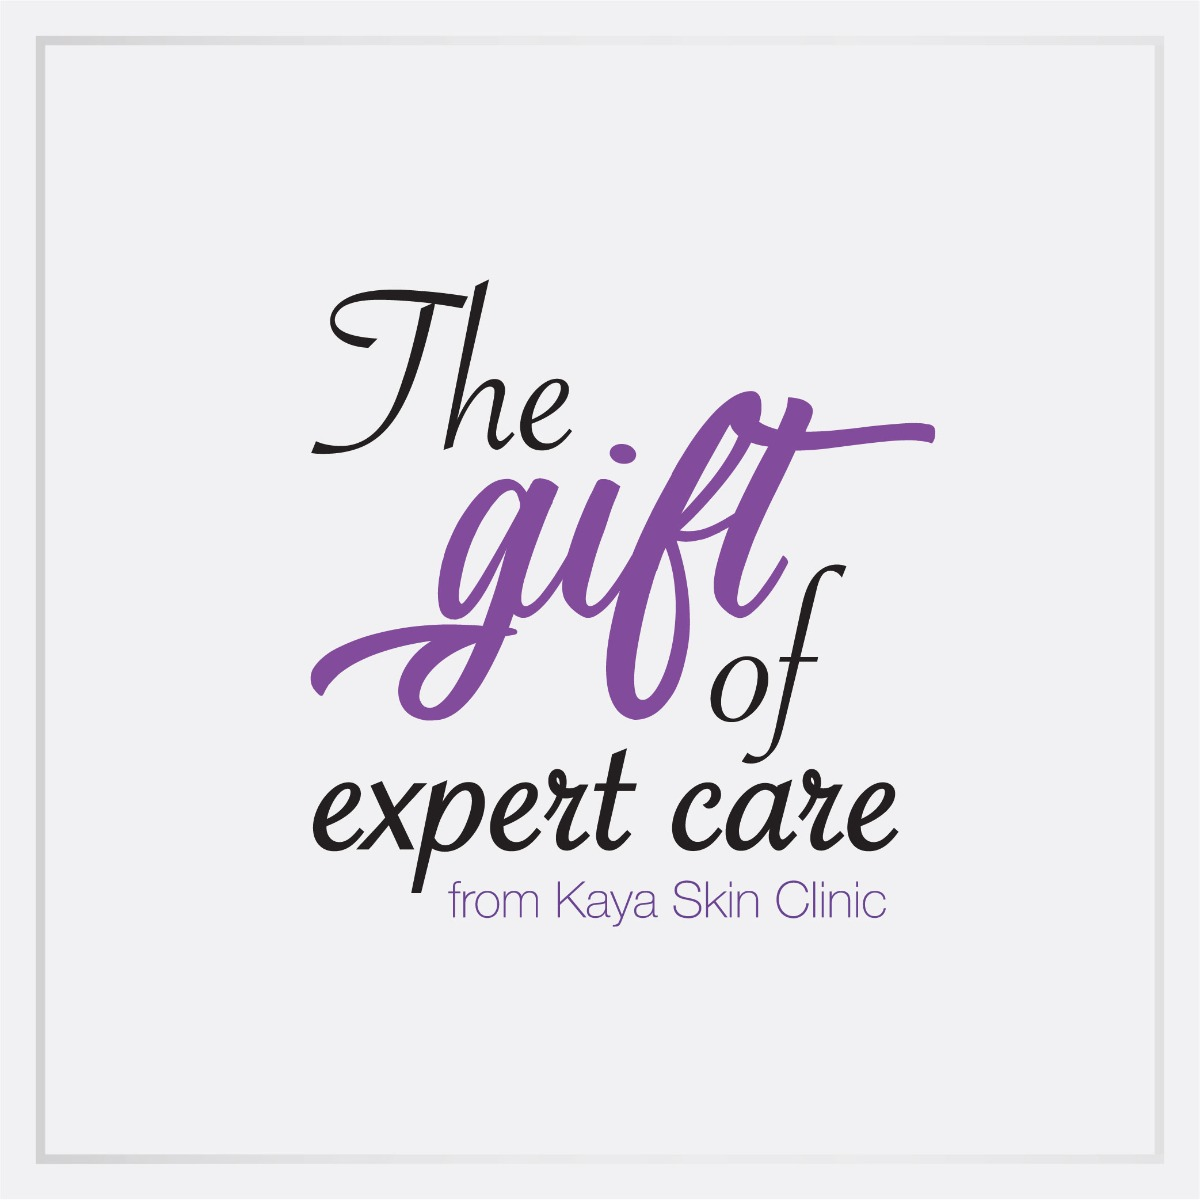 Kaya therapies for Men worth 1500 AED